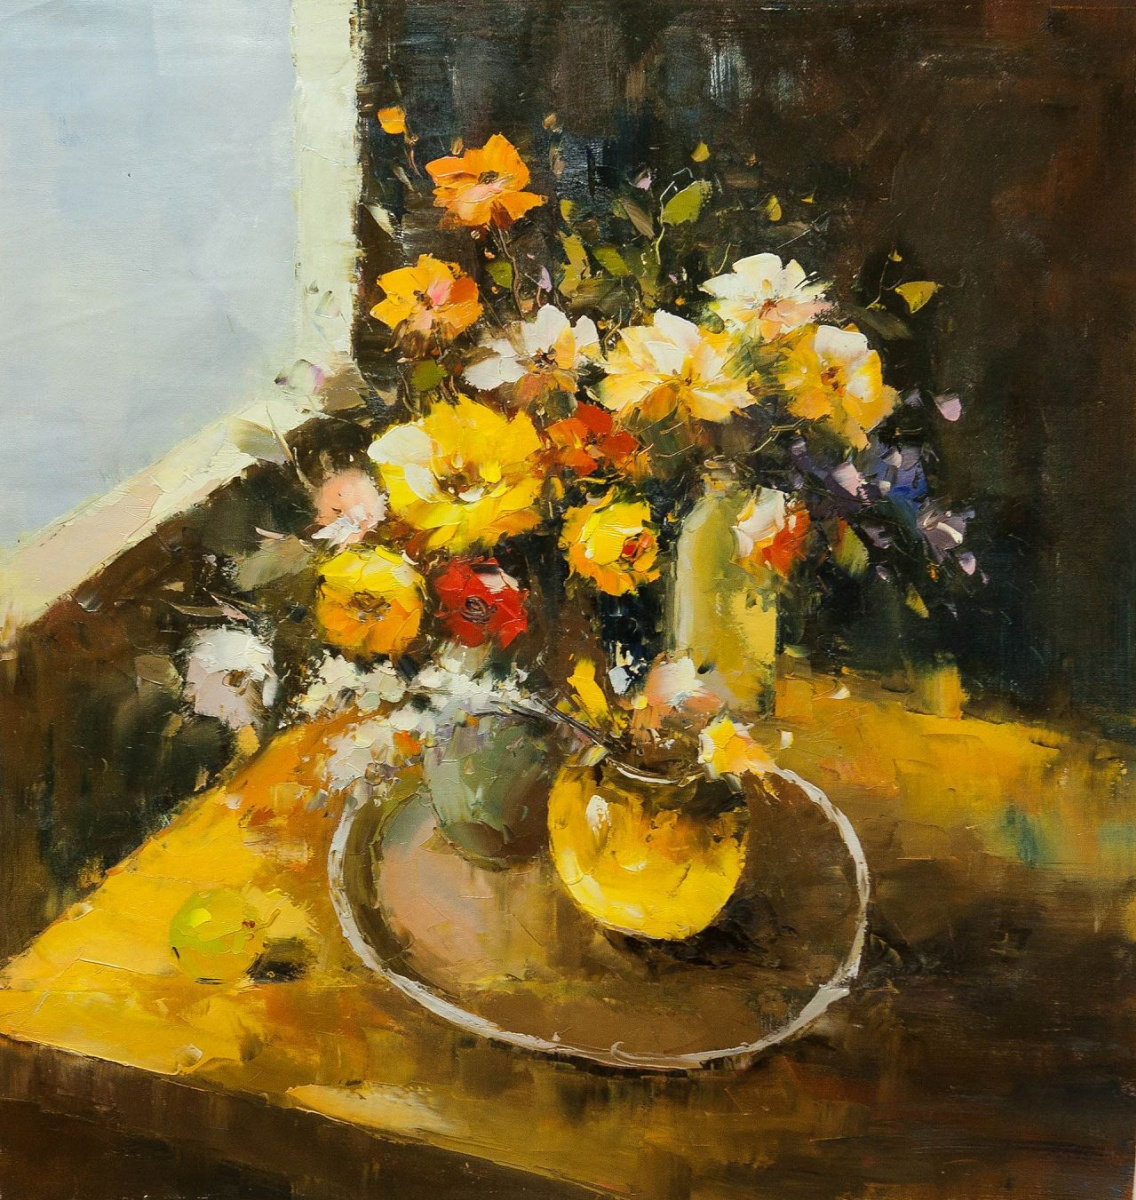 (no name). Still life in yellow tones